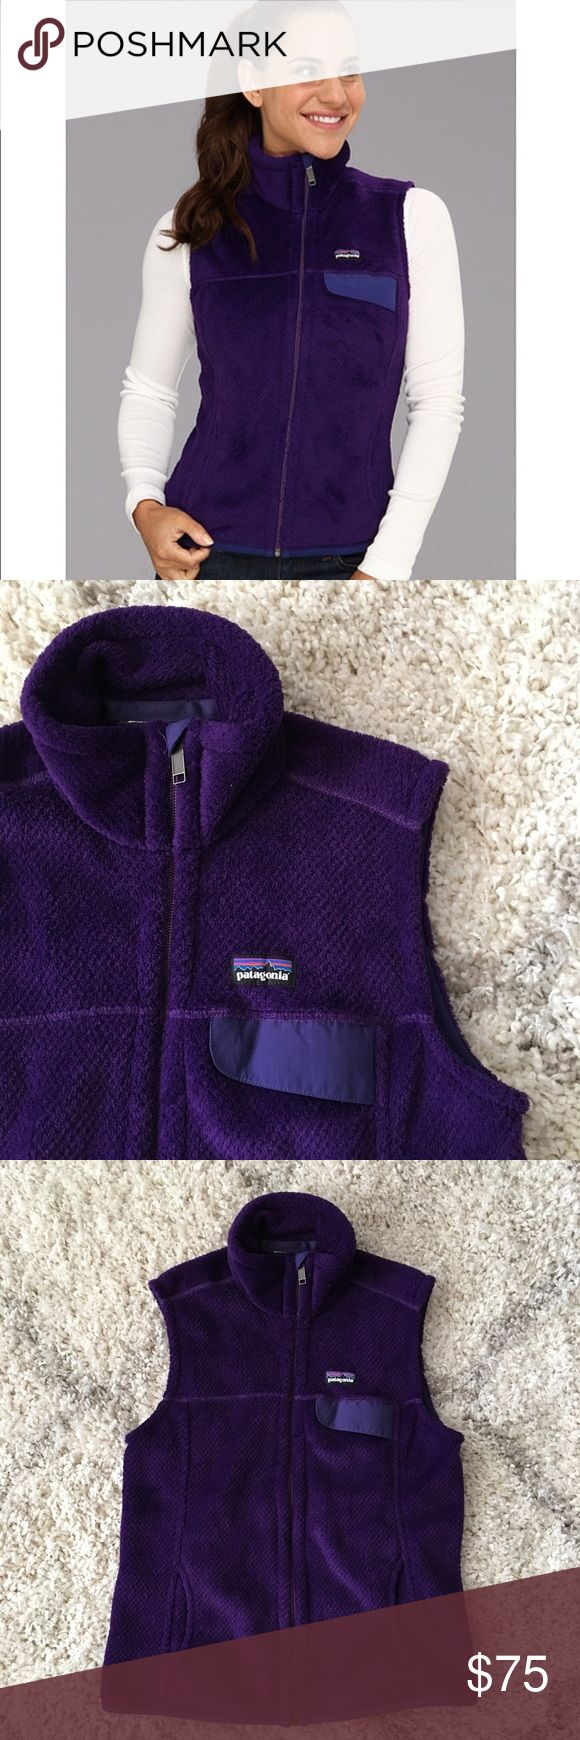 Patagonia Re-Tool Fleece Vest Patagonia Re-Tool Vest in purple.  ·         Full-length zipper with zipper garage ·         On-seam hand warmer pockets ·         Chest pocket with nylon flap  Lightly worn and washed – no stains, holes, or pilling – great, pre-owned condition. Bundle & save 💰! Sorry - 🚫 trades! Patagonia Jackets & Coats Vests